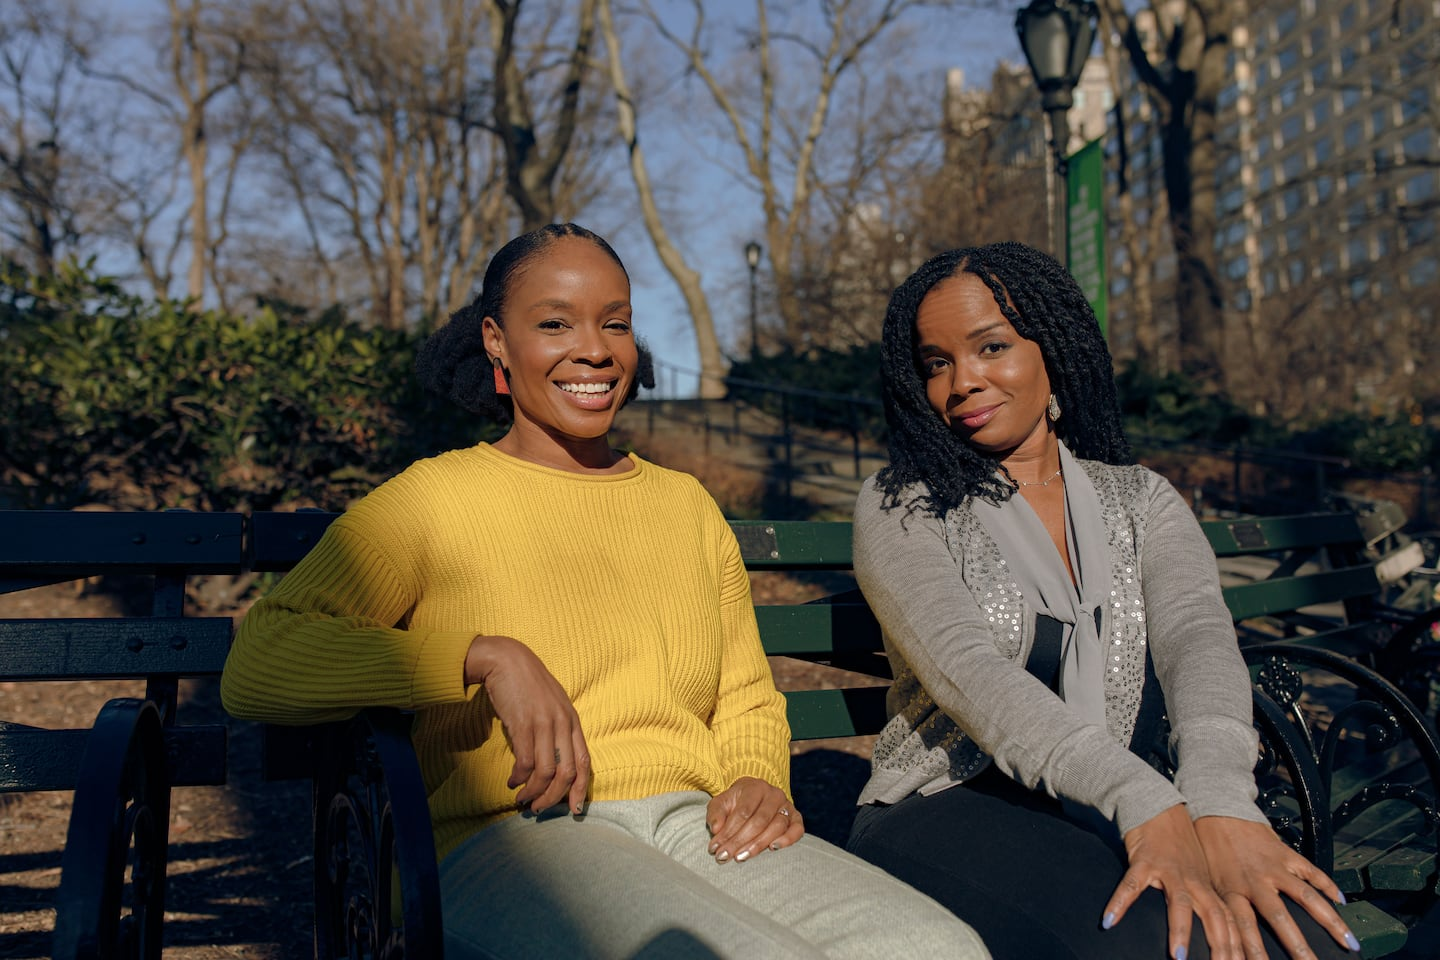 Why Amber Ruffin and her sister wrote a book about racism